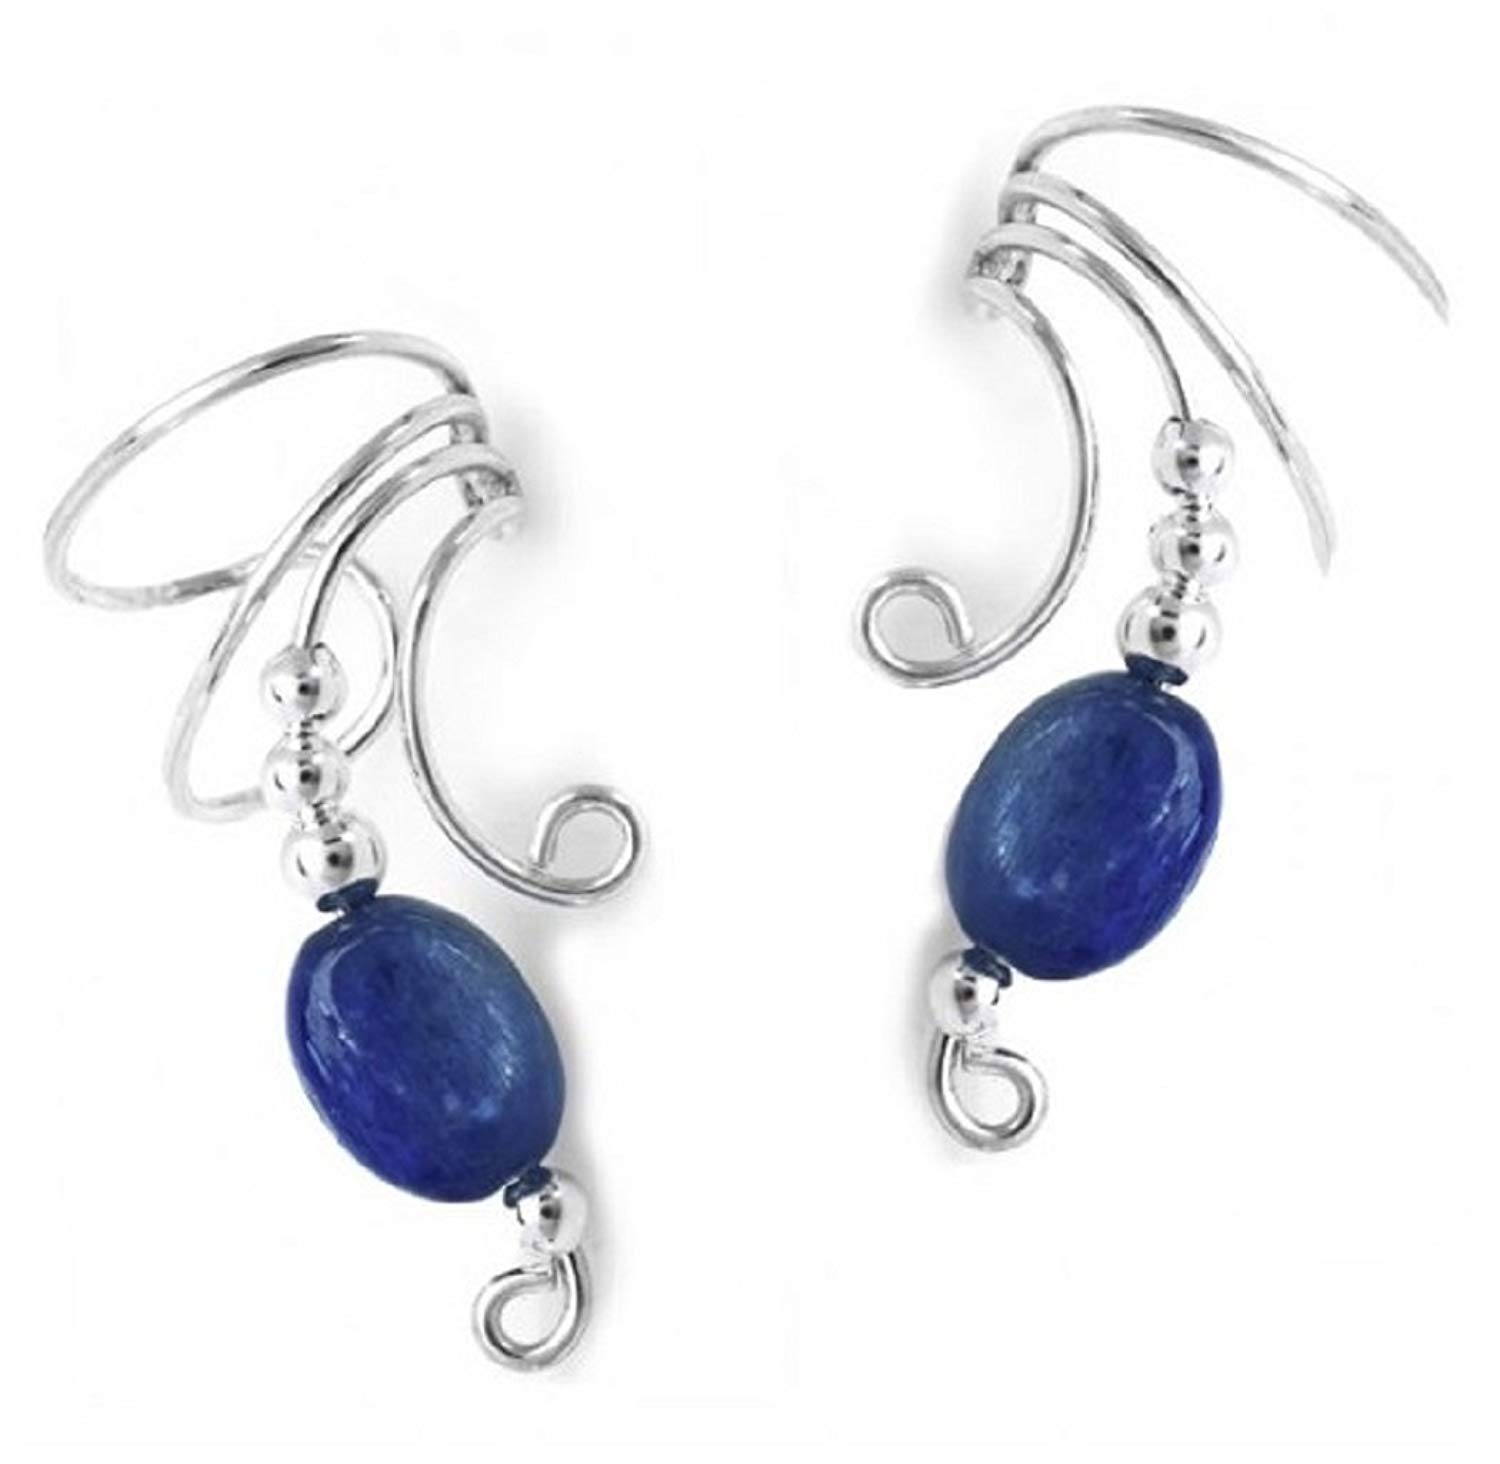 faa744cc5eb Get Quotations · Sterling Silver Blue Kyanite Oval Bead Wave Ear Cuff Wrap  Set